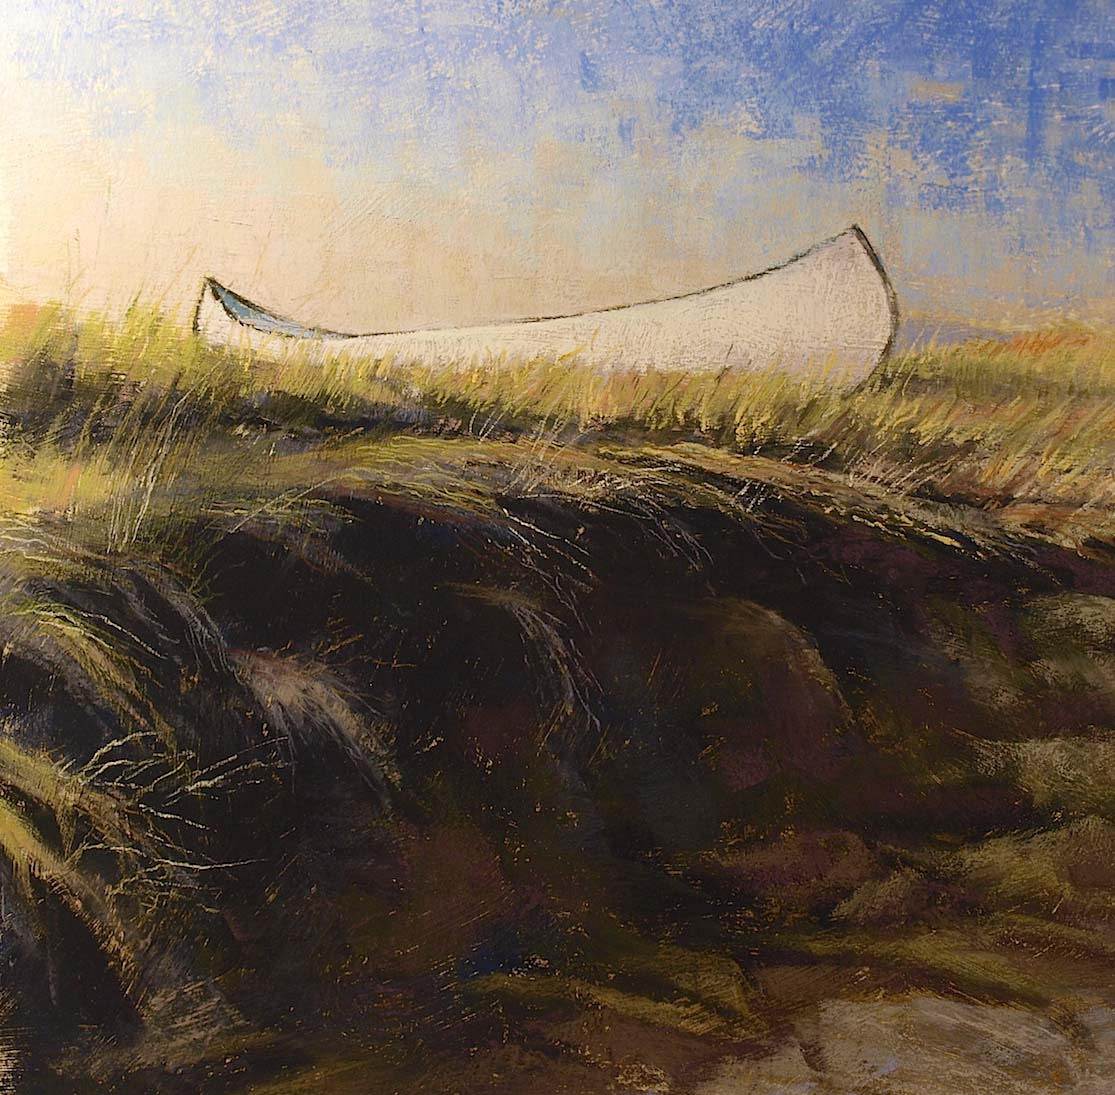 """Canoe Aglow By Island Road"" Essex, pastel on sanded paper, 21"" x 21"", $1,800 (framed)"